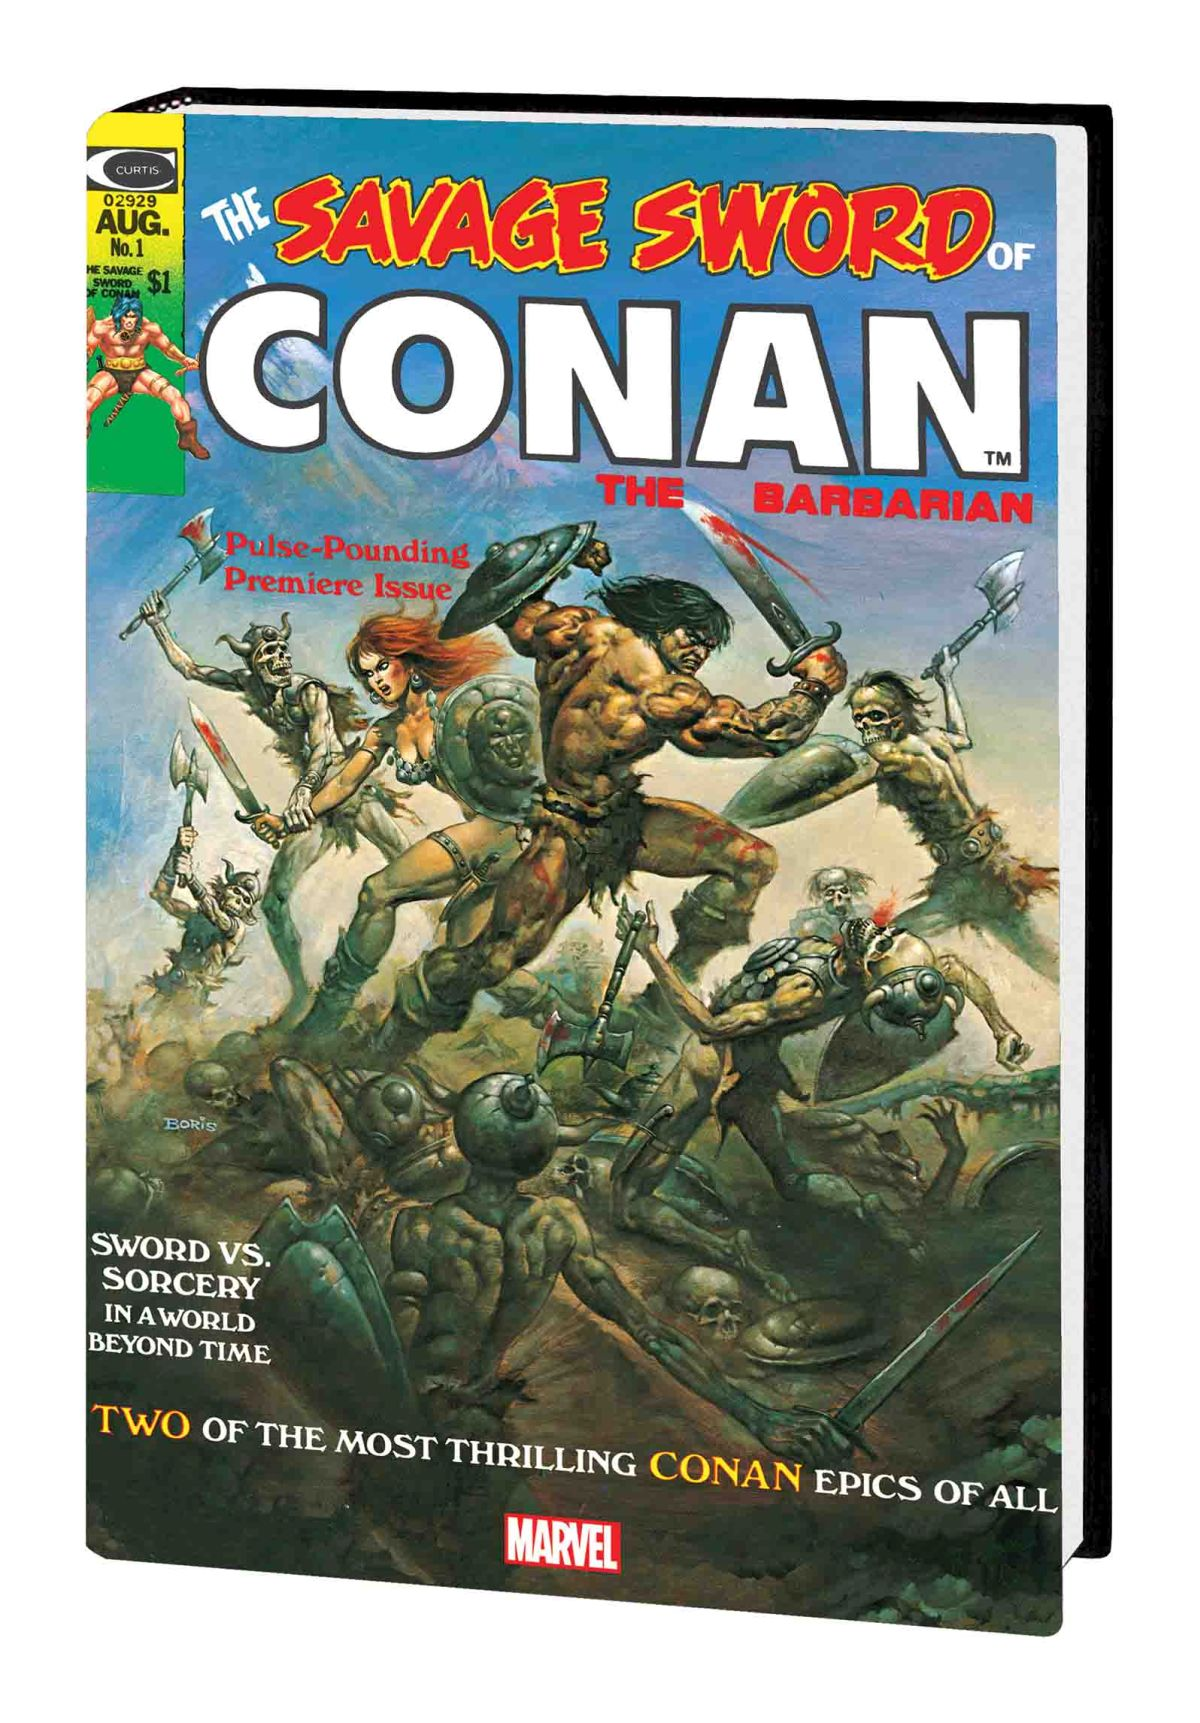 SAVAGE SWORD OF CONAN: THE ORIGINAL MARVEL YEARS OMNIBUS VOL. 1 HC (Variant)